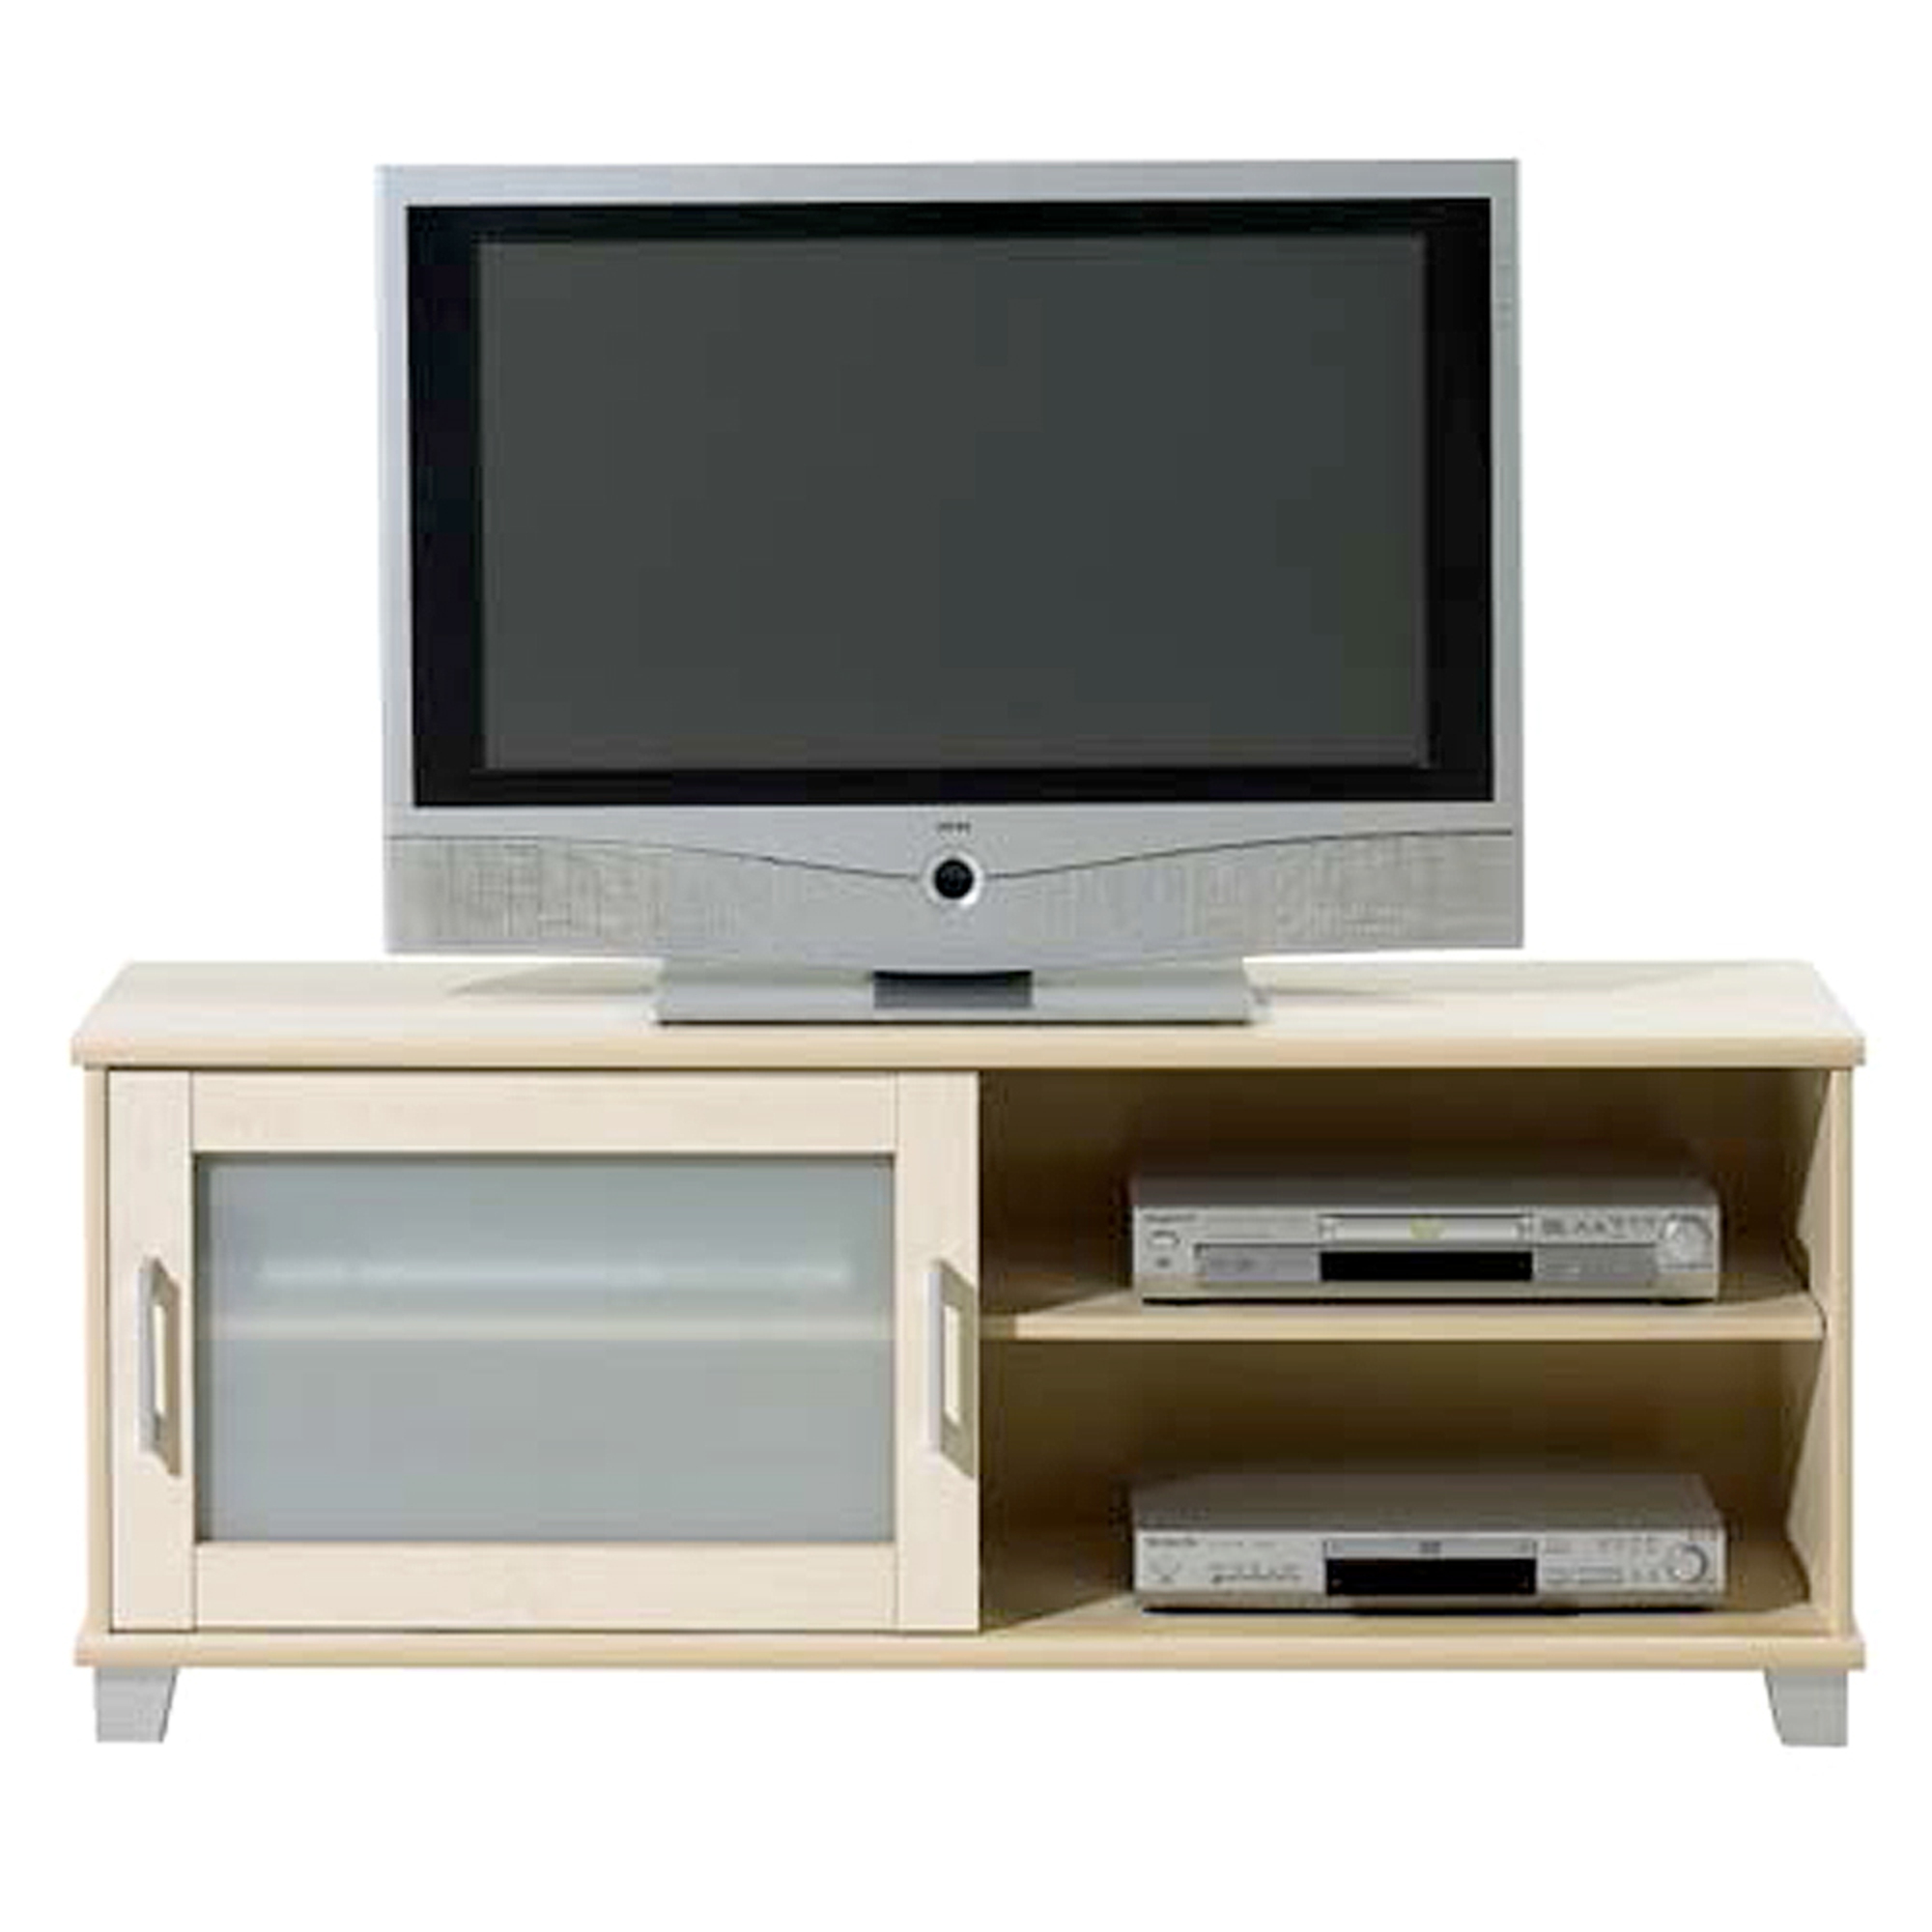 meuble tv en solde meuble tv 2 portes 2 niches en bois. Black Bedroom Furniture Sets. Home Design Ideas